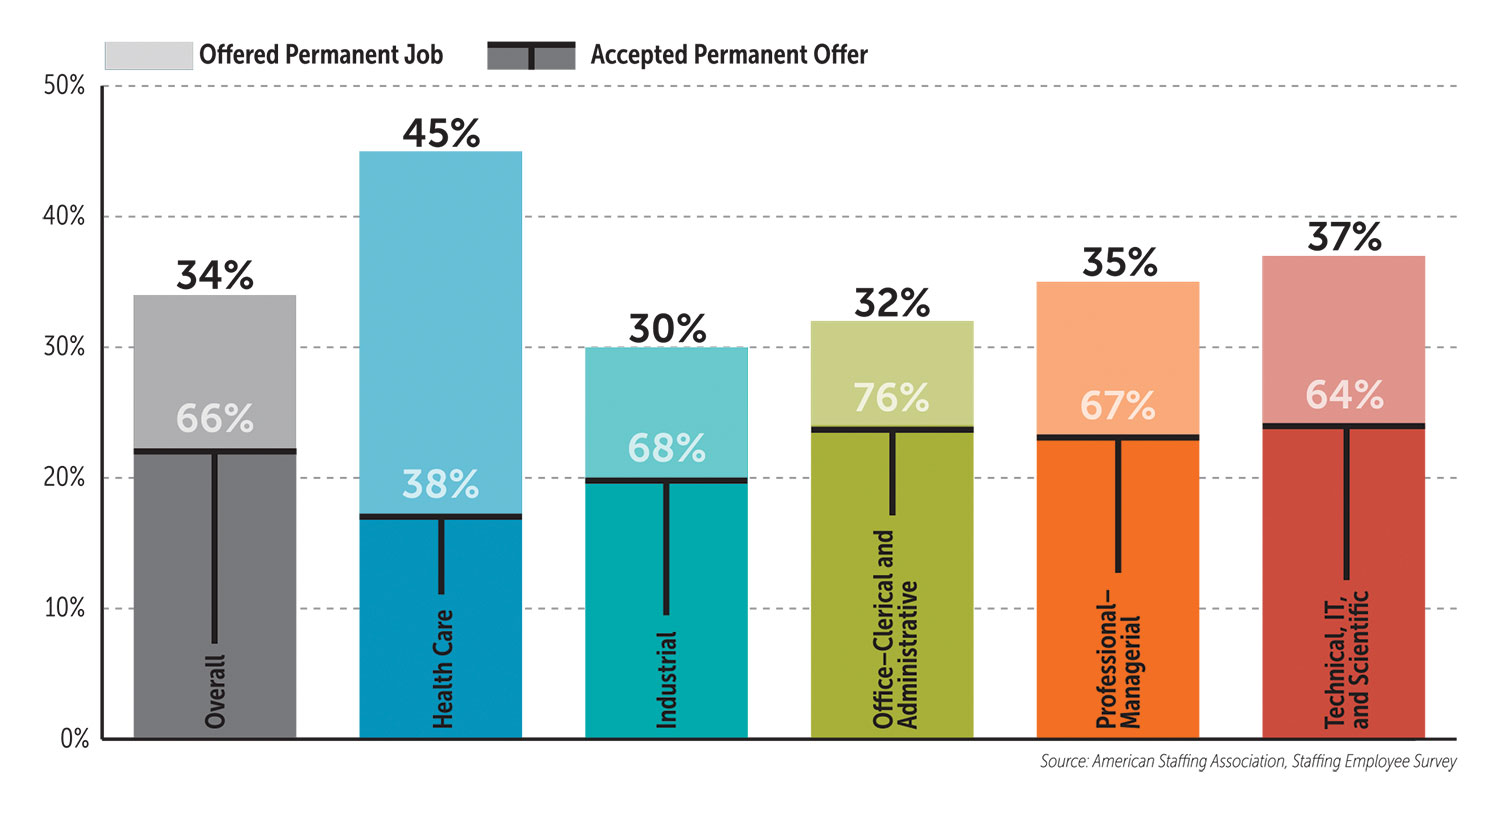 Charts & Figures - American Staffing Association